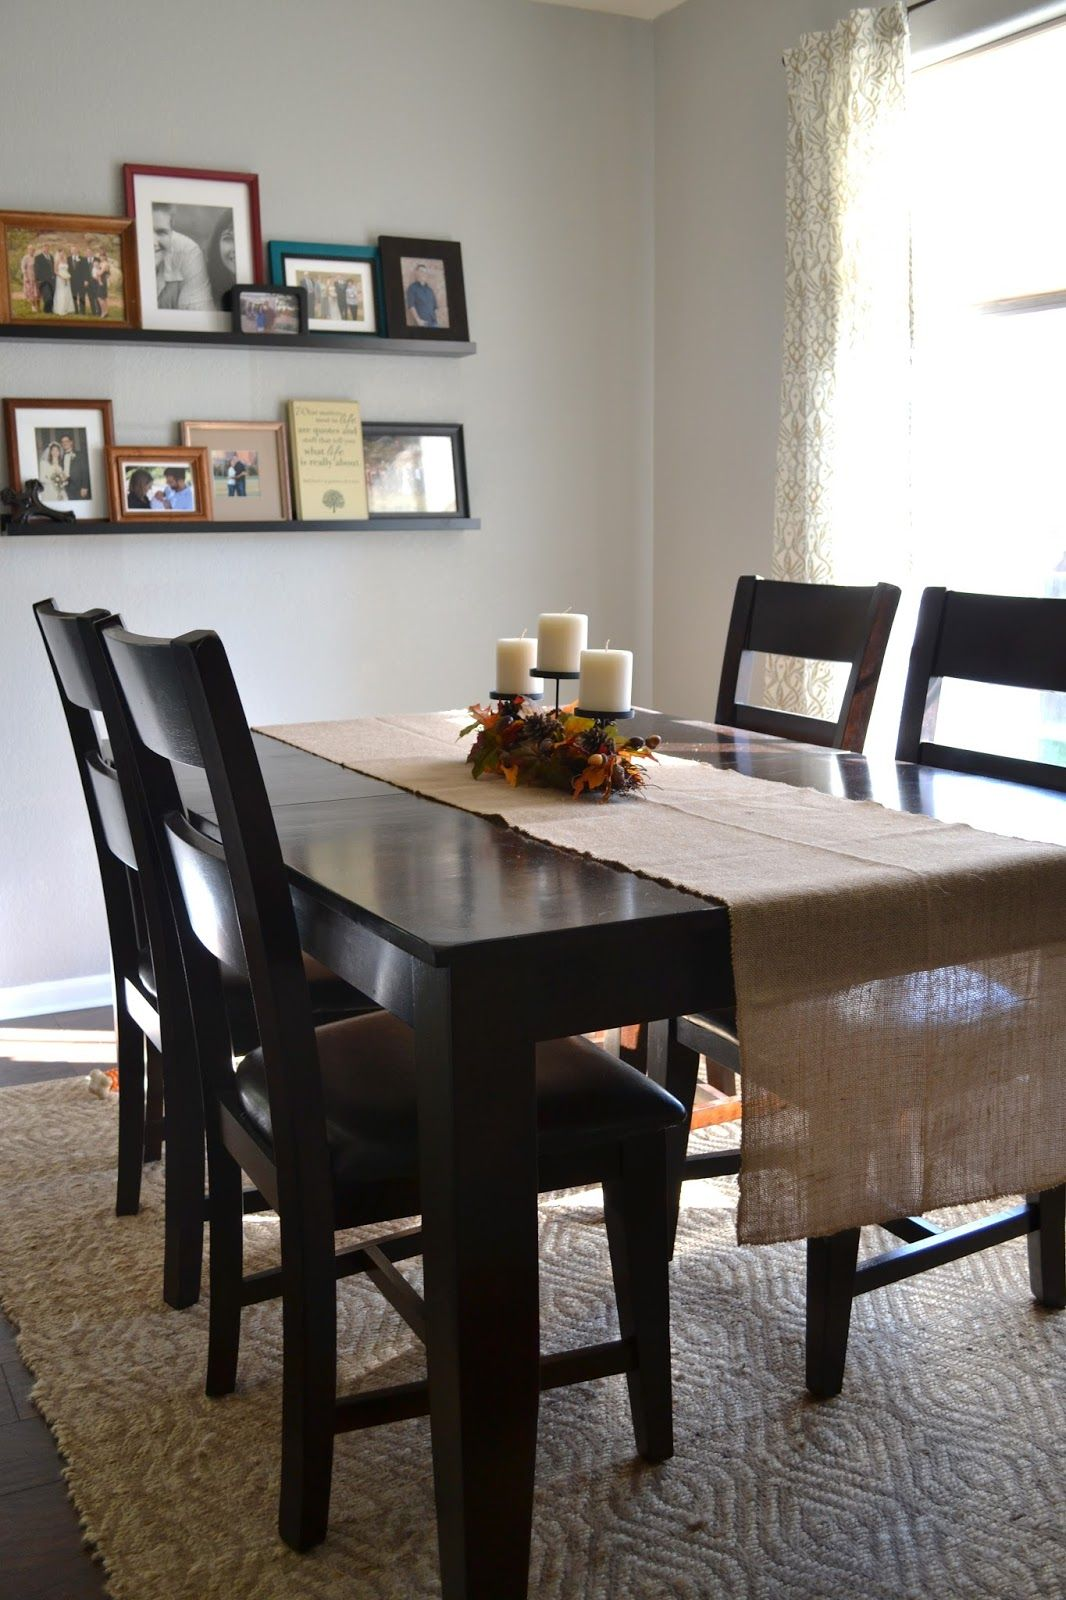 hobby lobby table and chairs revolving chair indiamart easy updates for fall burlap runner i like their set